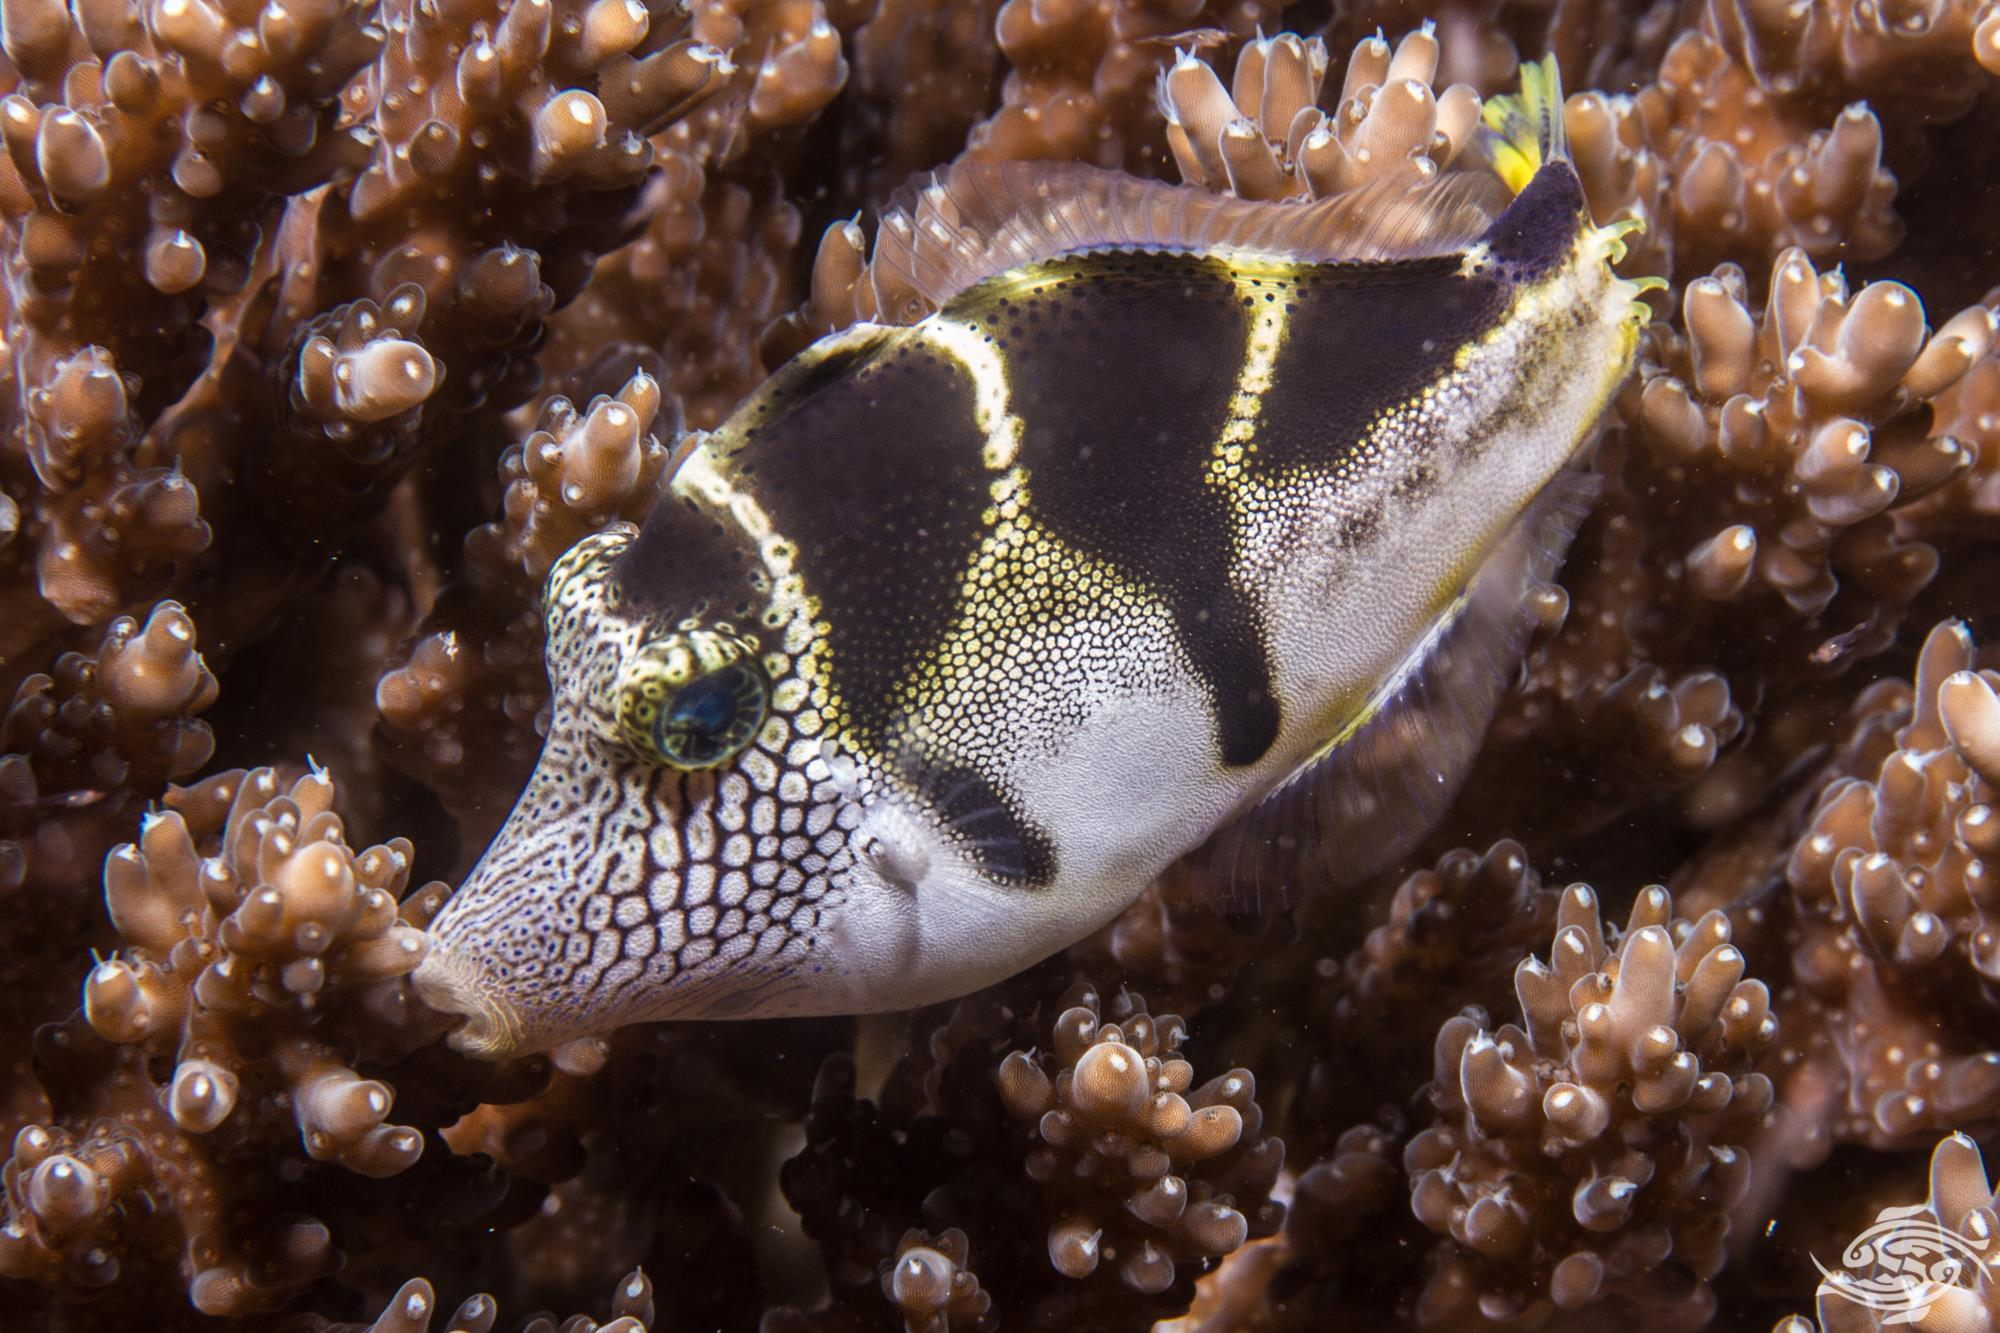 mimick filefish or black saddled filefish (Paraluteres prionurus)